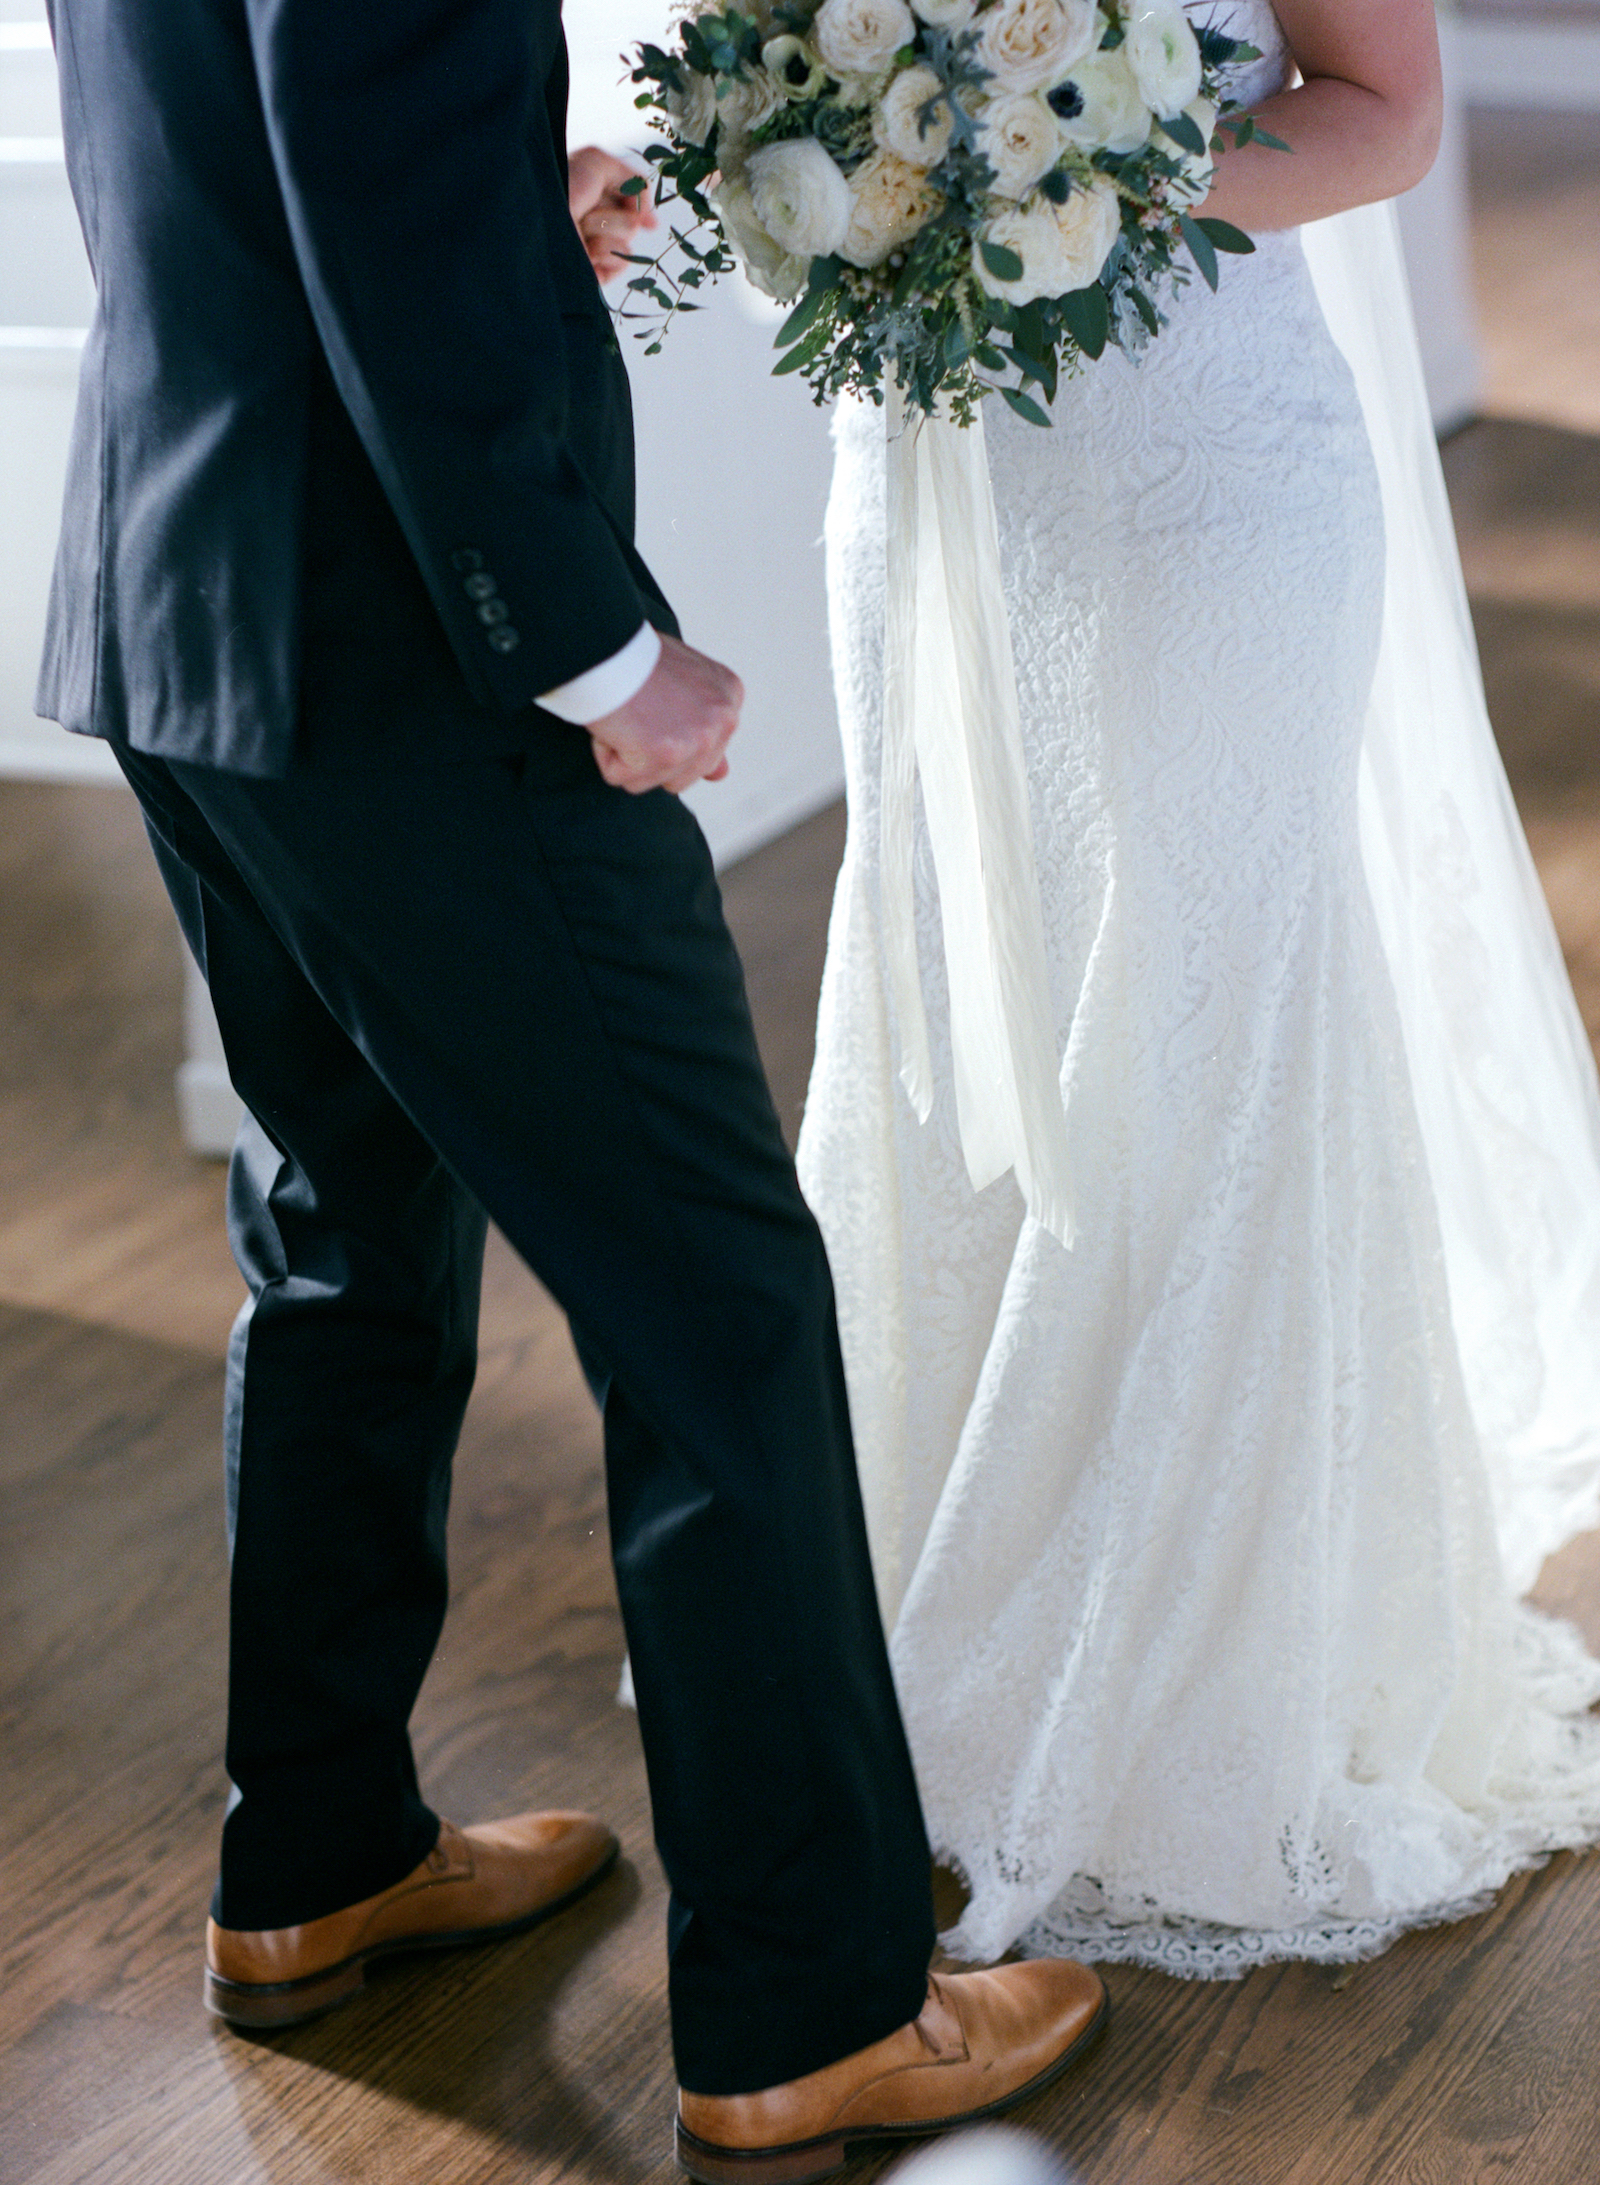 White Winter Wedding with loose, natural floral design in 12th South, Nashville